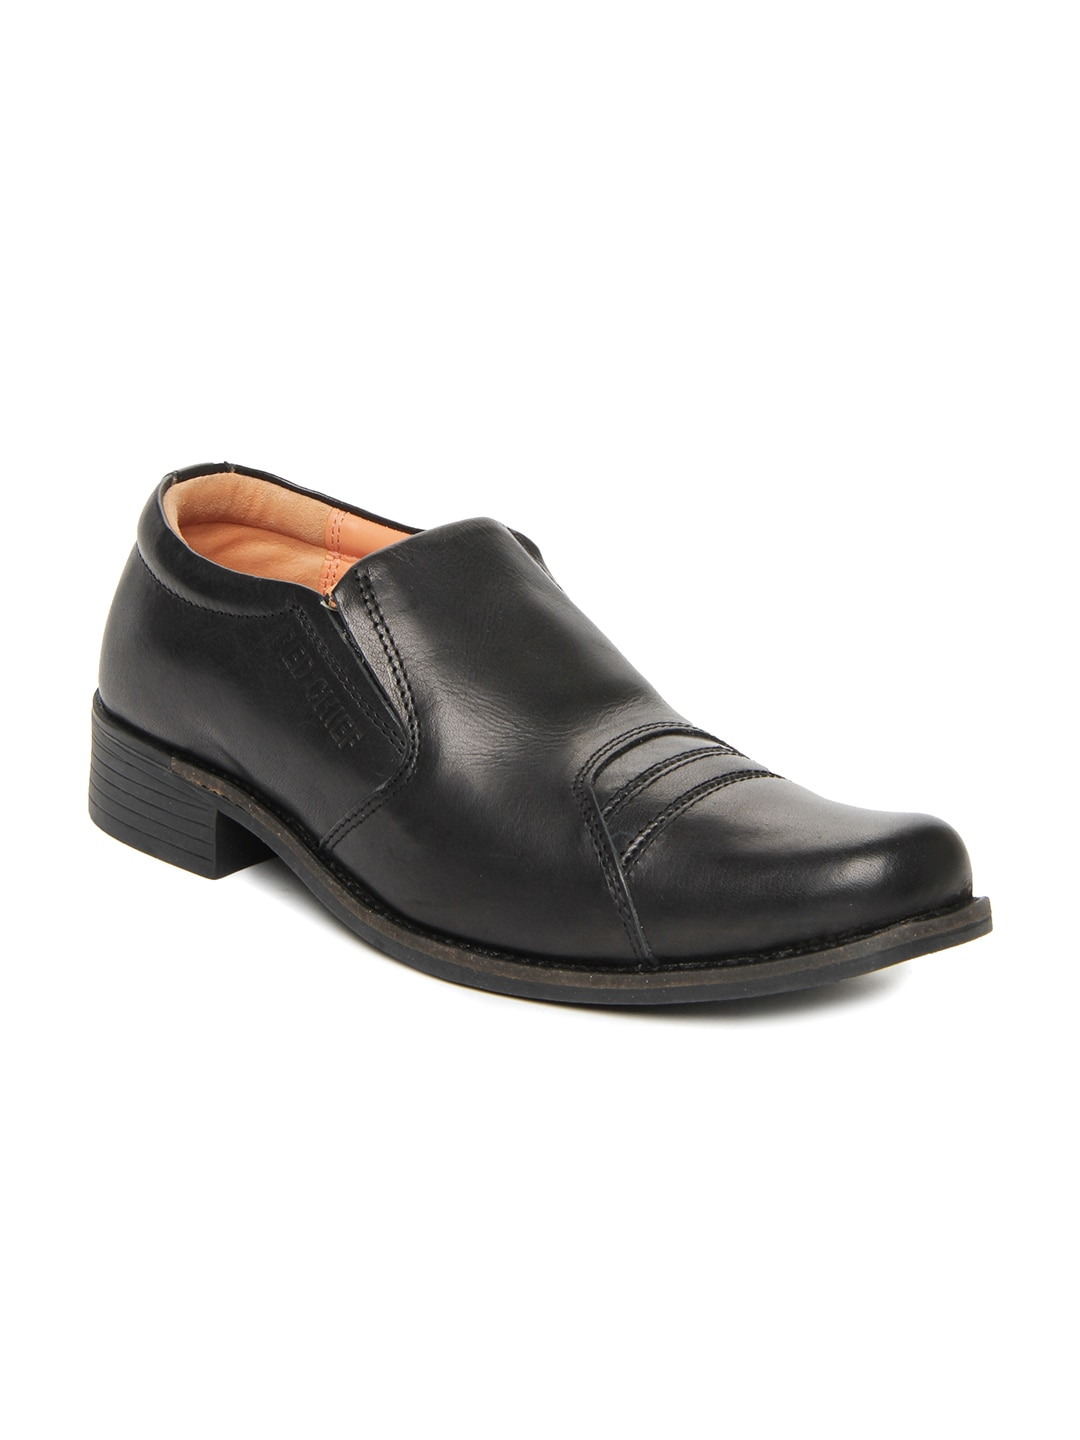 buy chief black leather semi formal shoes 633